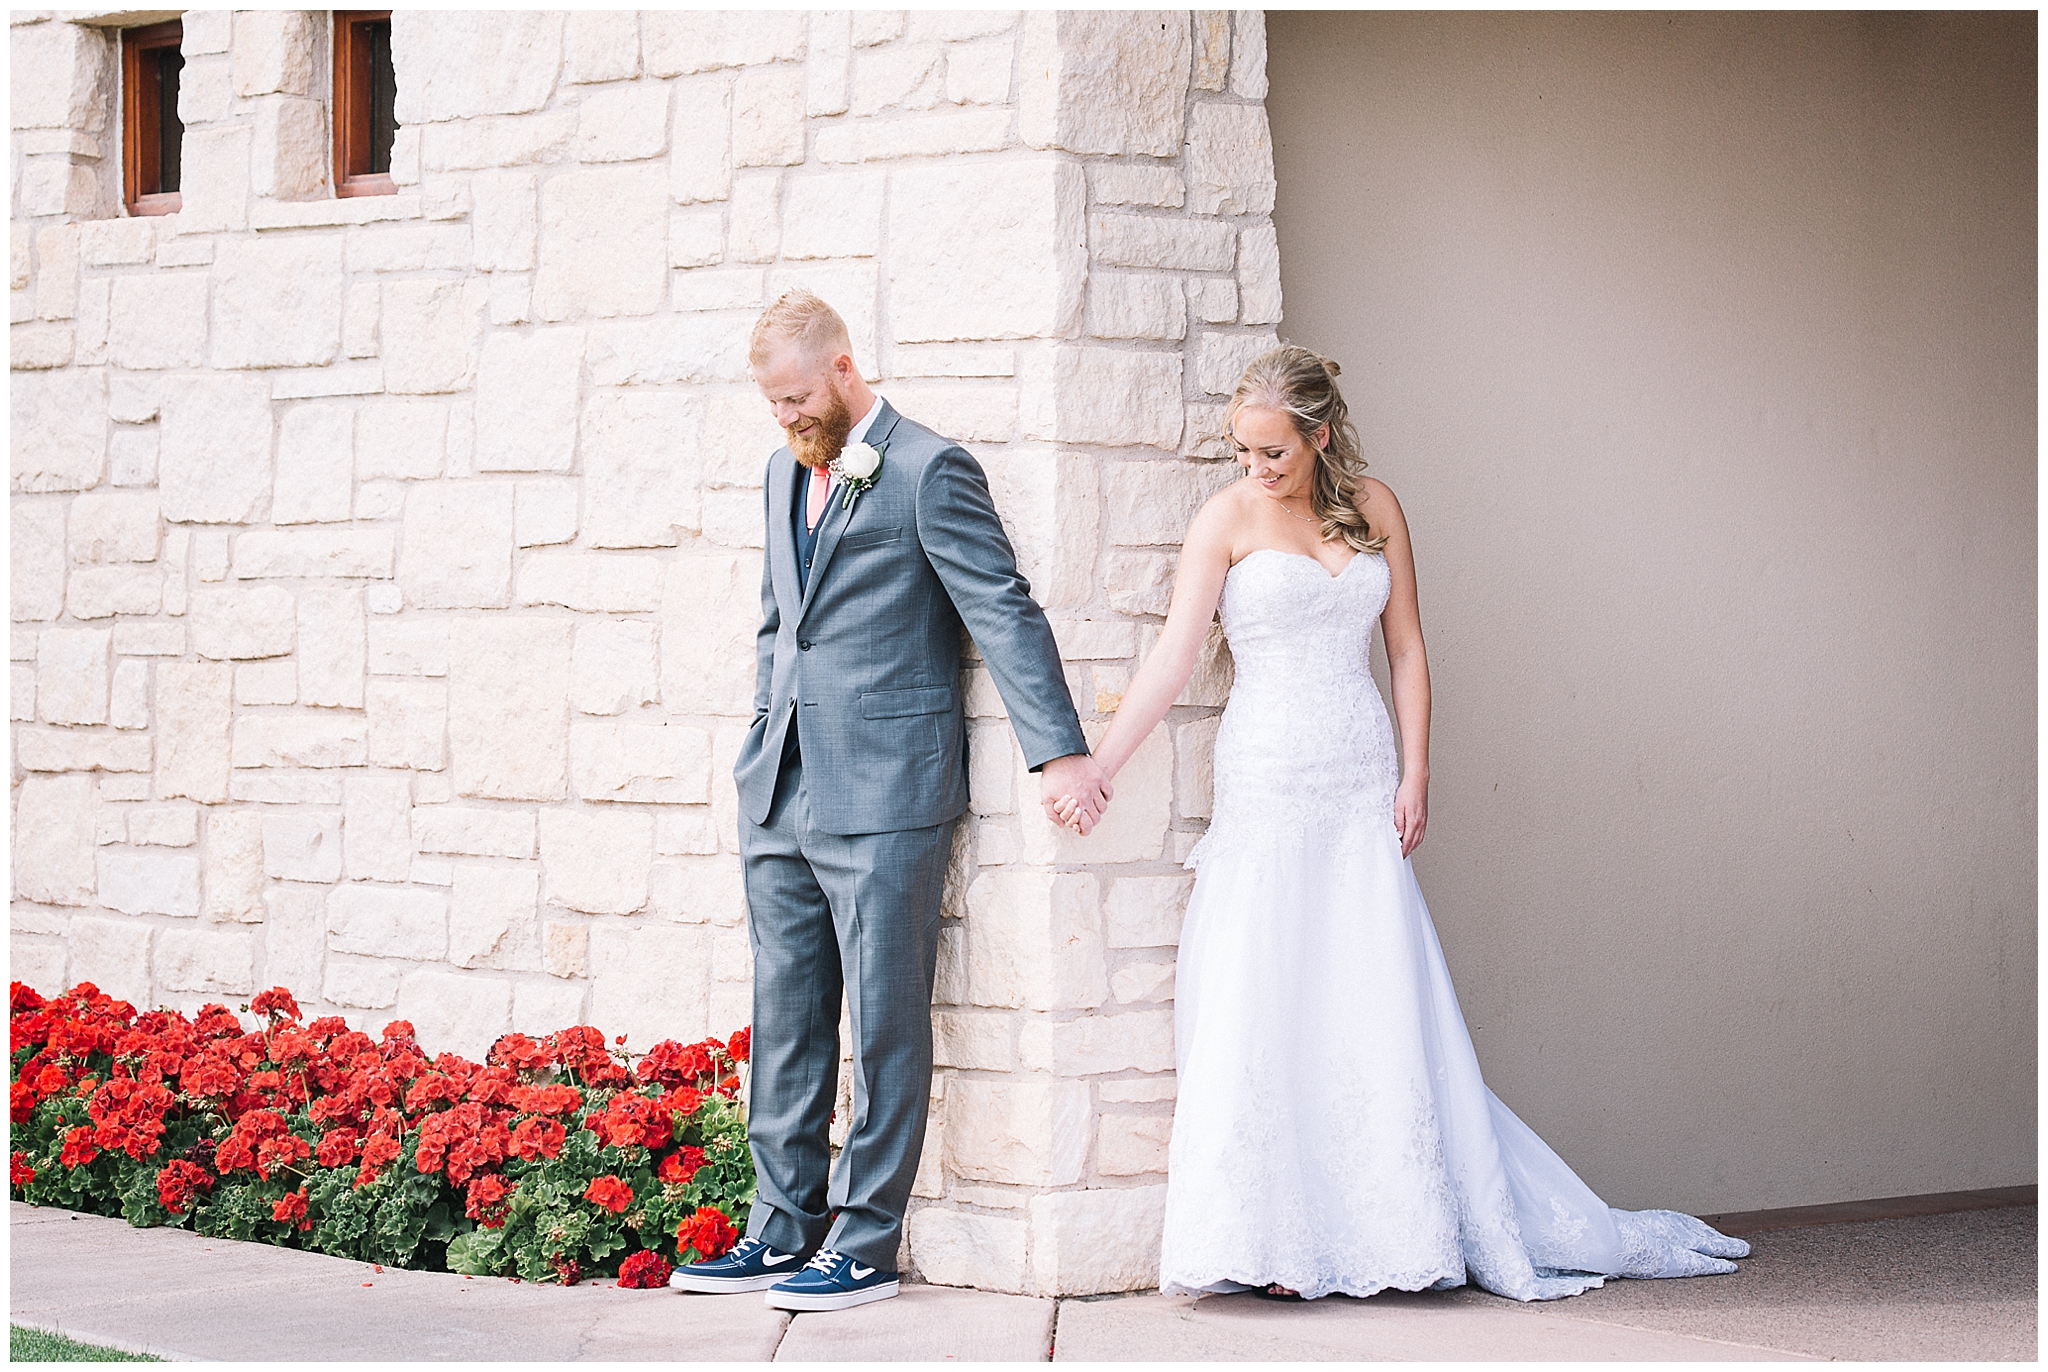 First Look Photo by Aly Kirk - Ocotillo Oasis by Wedgewood Weddings